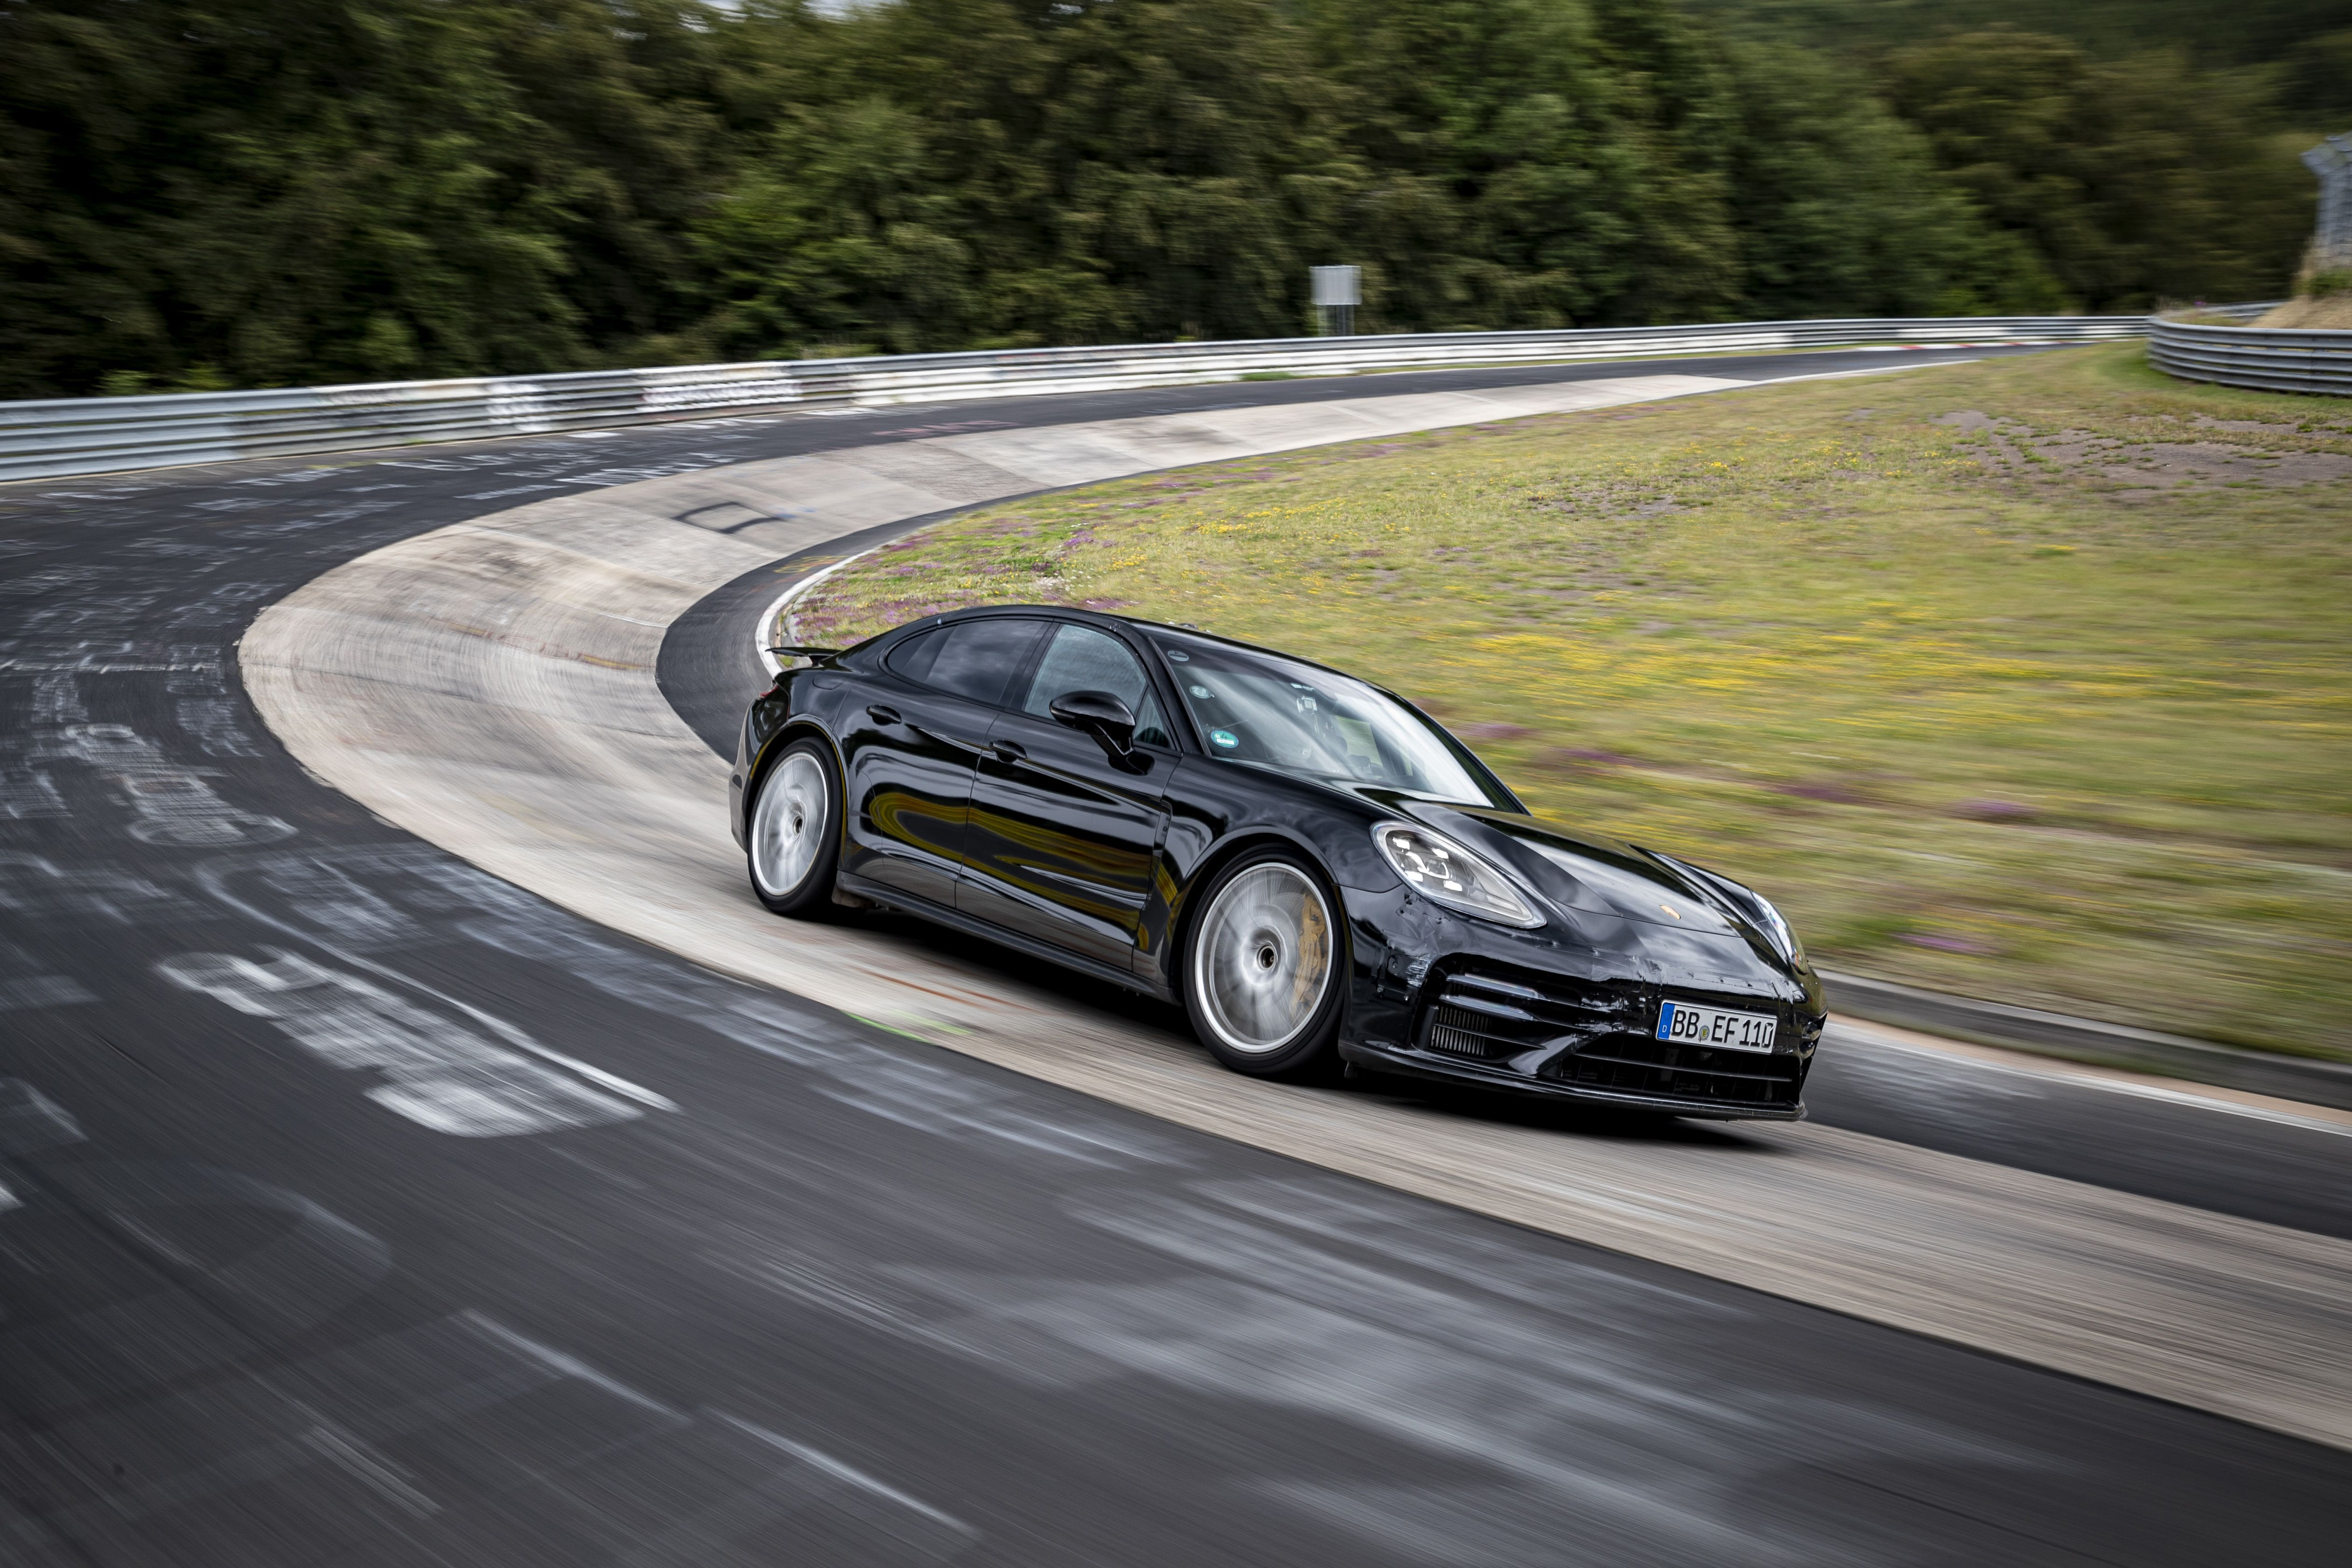 20 Porsche Panamera Is Now Even Faster at the Nurburgring Price and Release Date